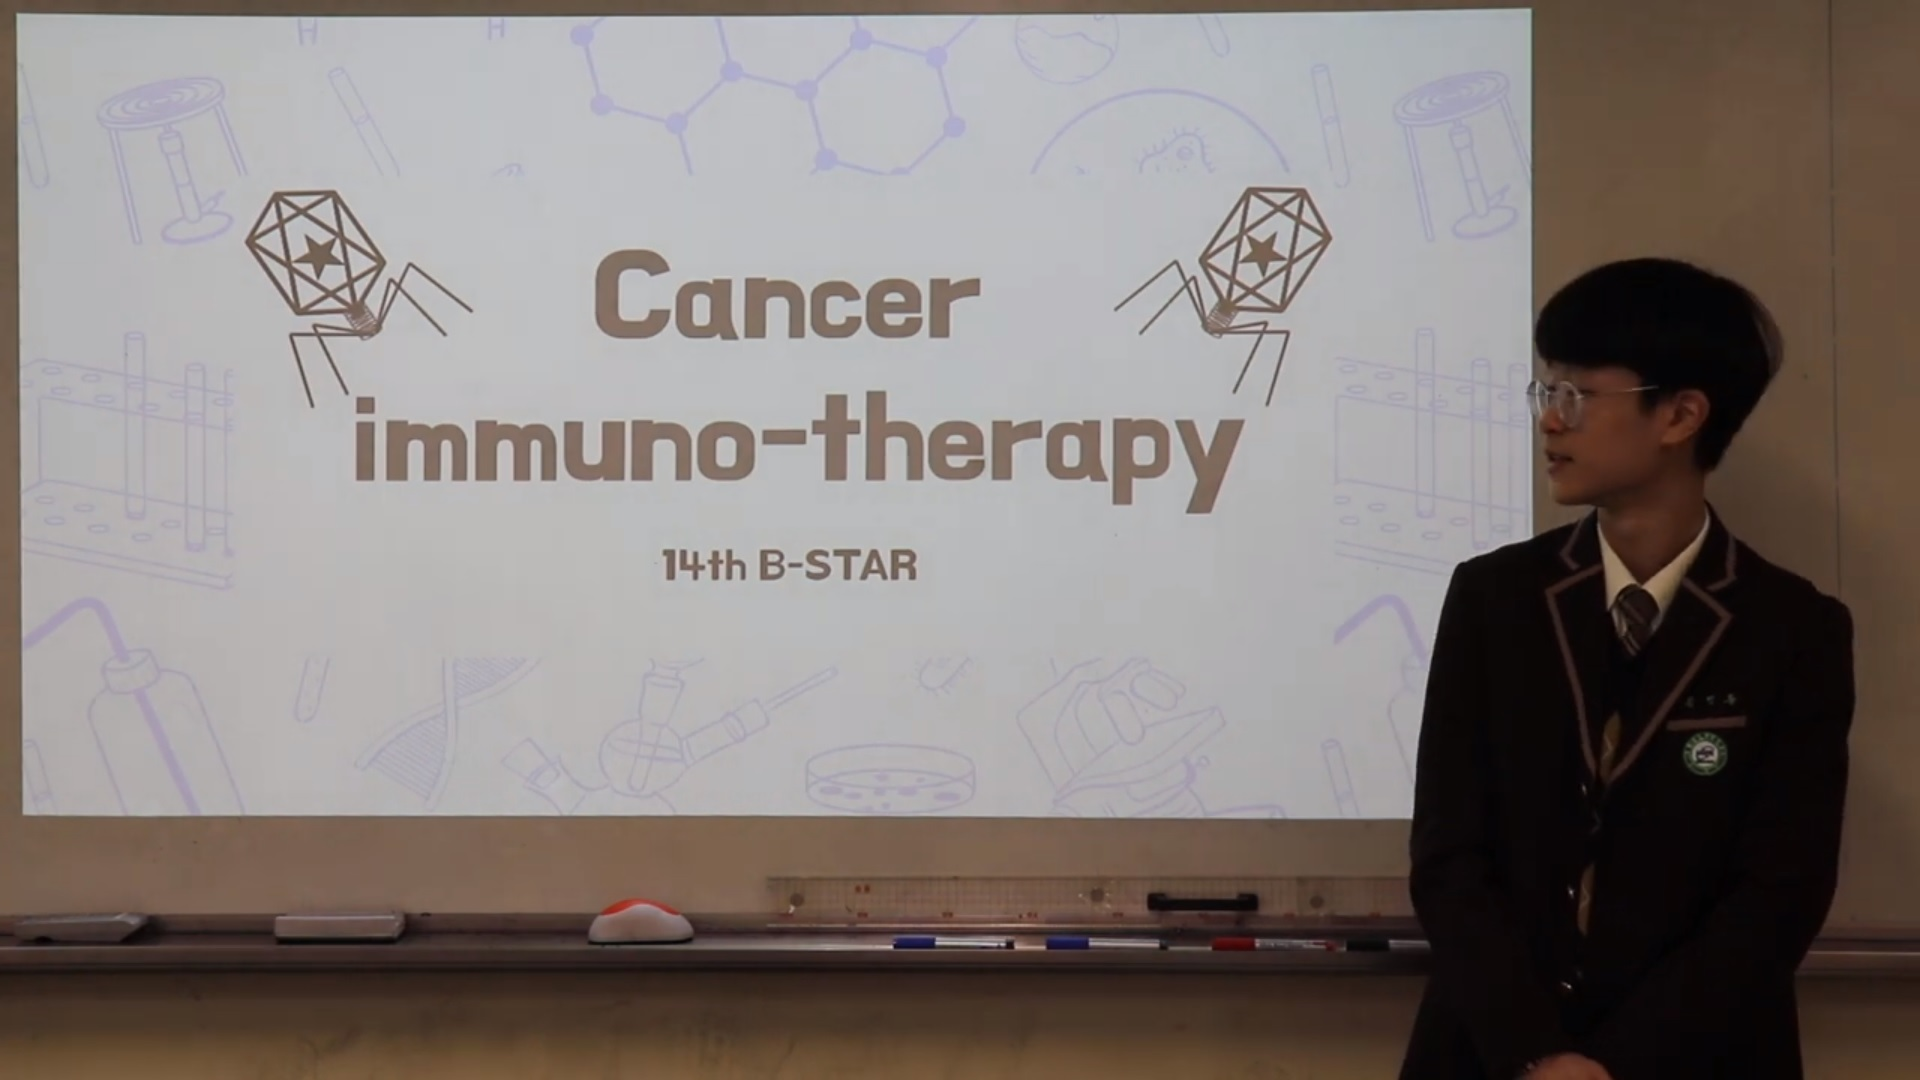 [주제발표 1주차] Cancer immuno-therapy by 14th B-STAR.jpg